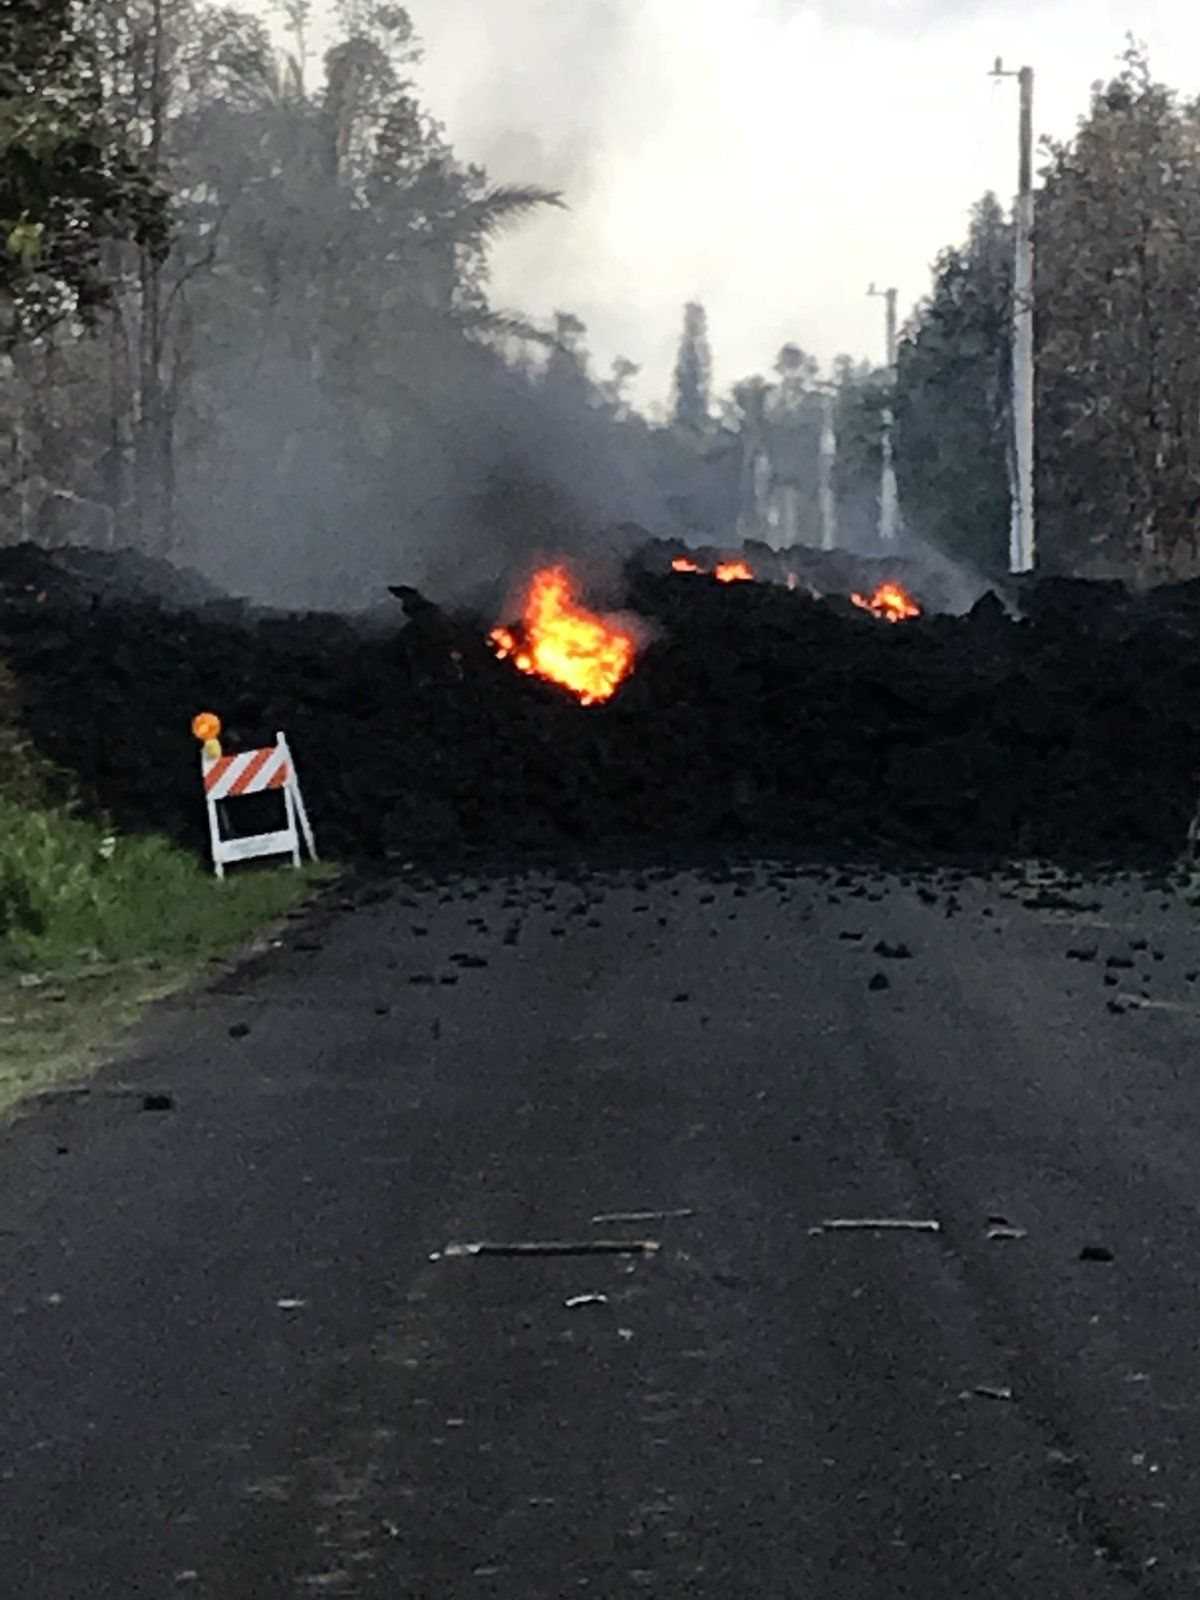 Kilauea - Lower Puna district - lava flow intersect a road - photos, above : HVO / under : HawaiiElectricLight /